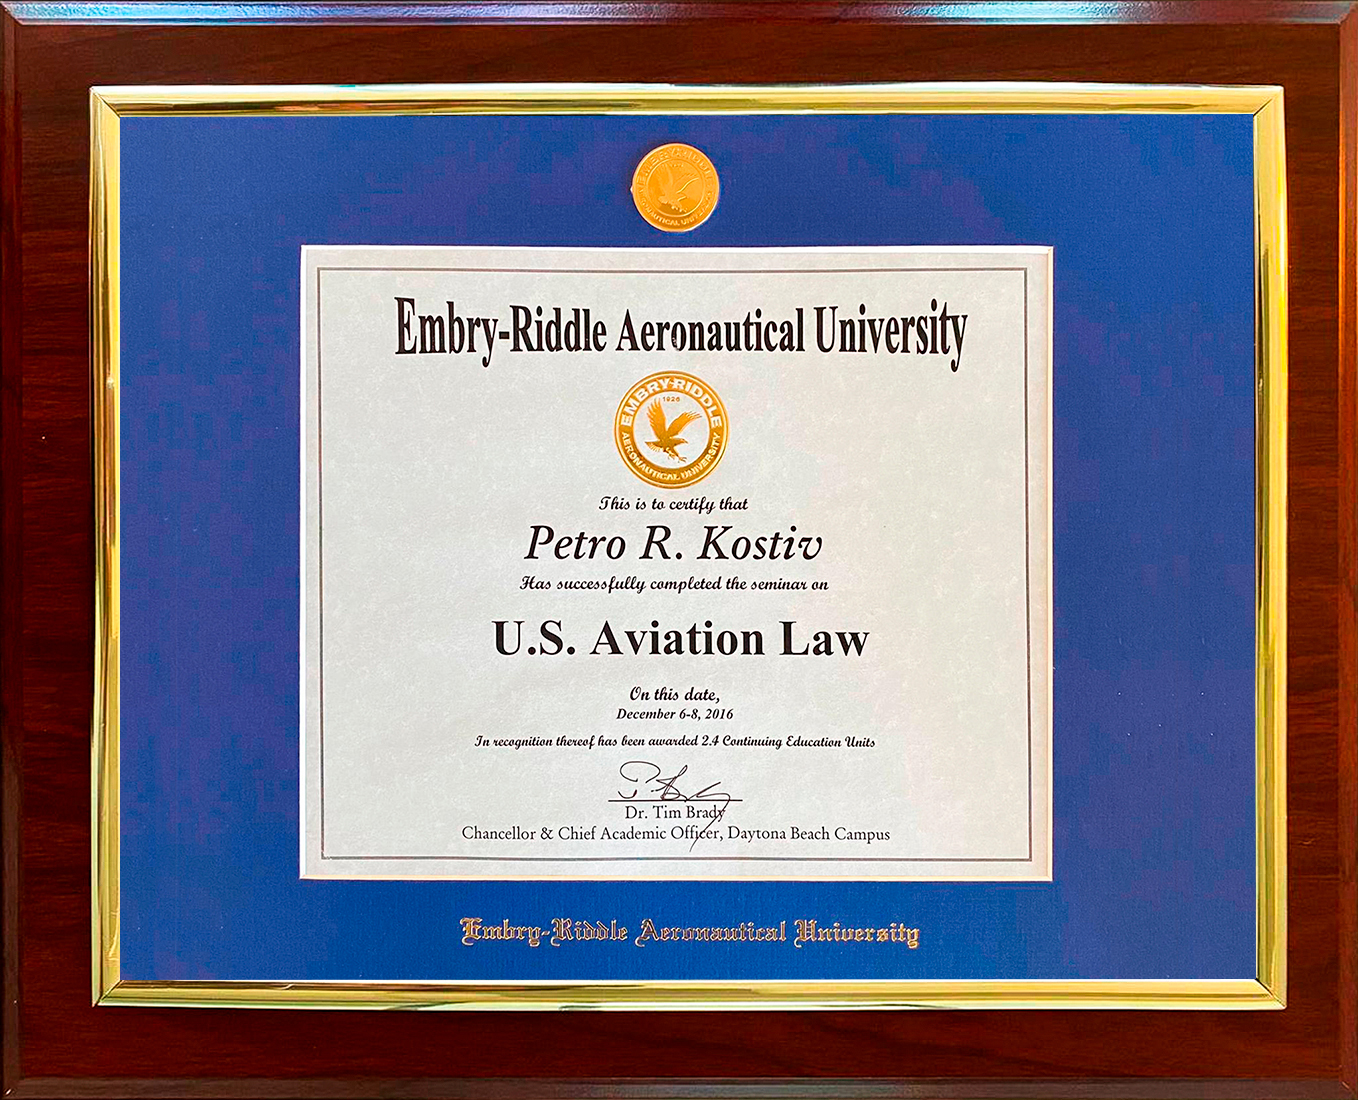 AVIATION LAW CERTIFICATION FROM EMBRY-RIDDLE AERONAUTICAL CERTIFICATE